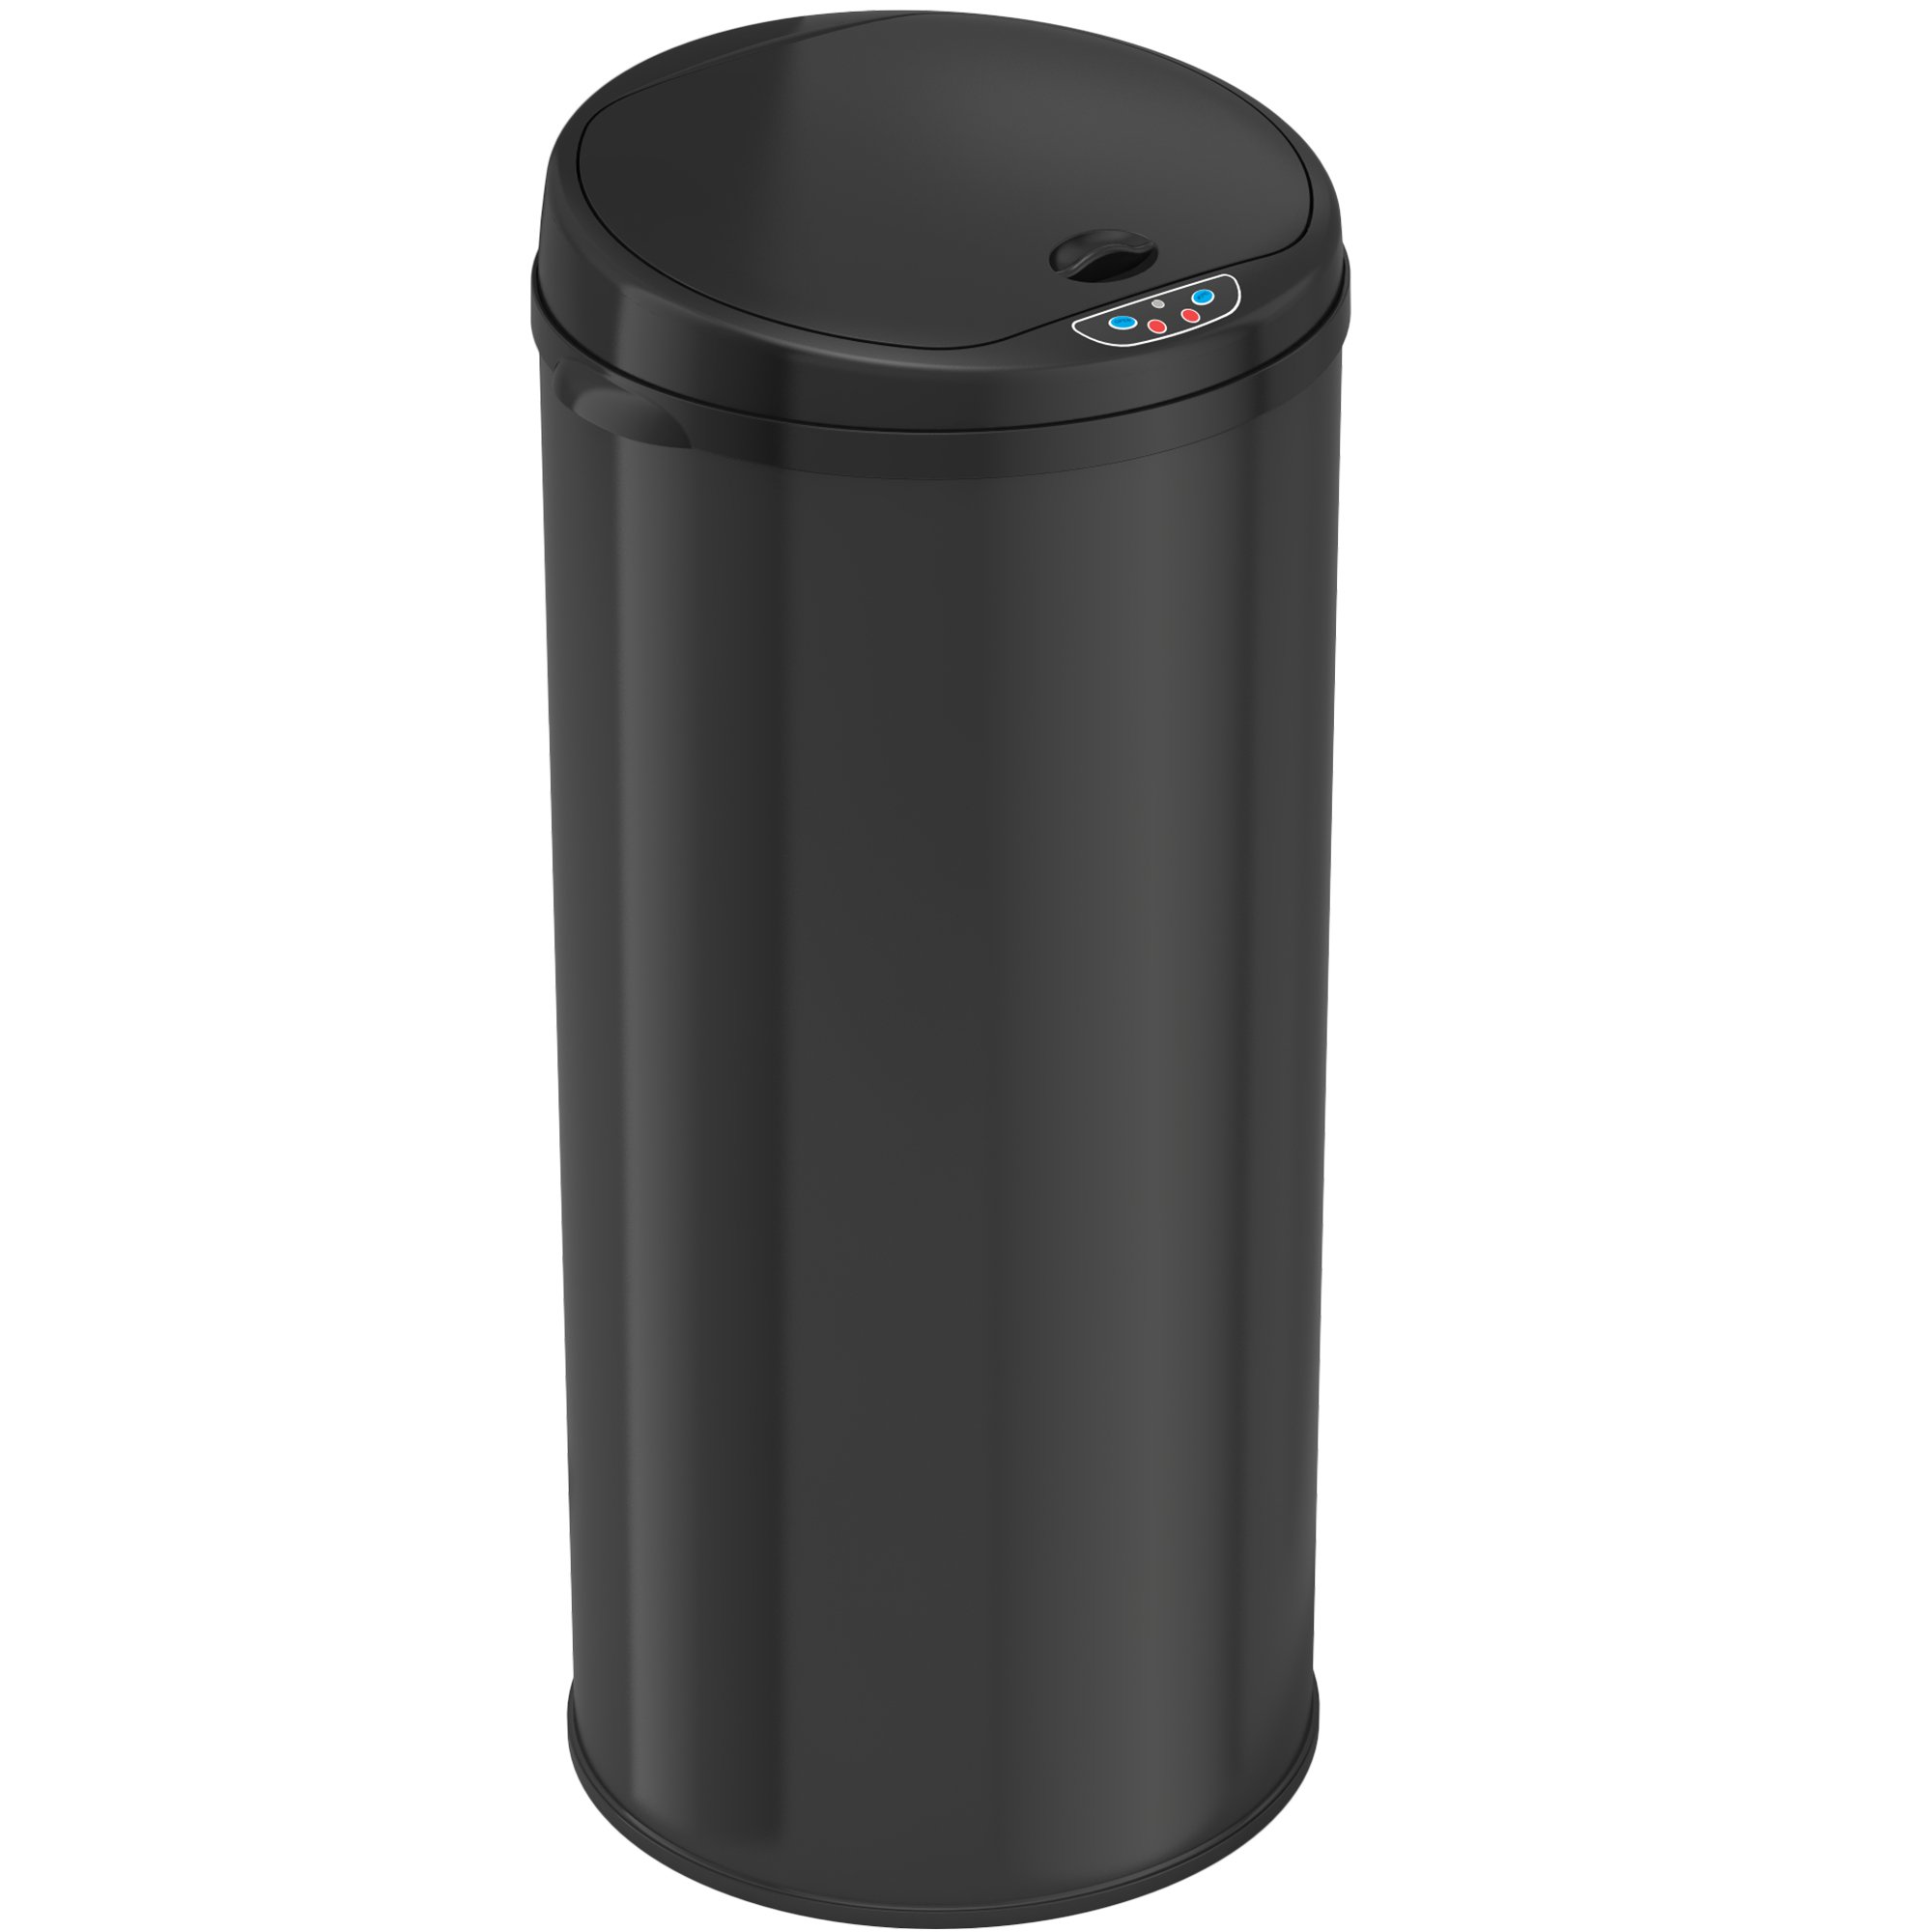 iTouchless 13 Gallon Automatic Trash Can with Odor Control System – Black Round Kitchen Sensor Garbage Bin for Kitchen or Office